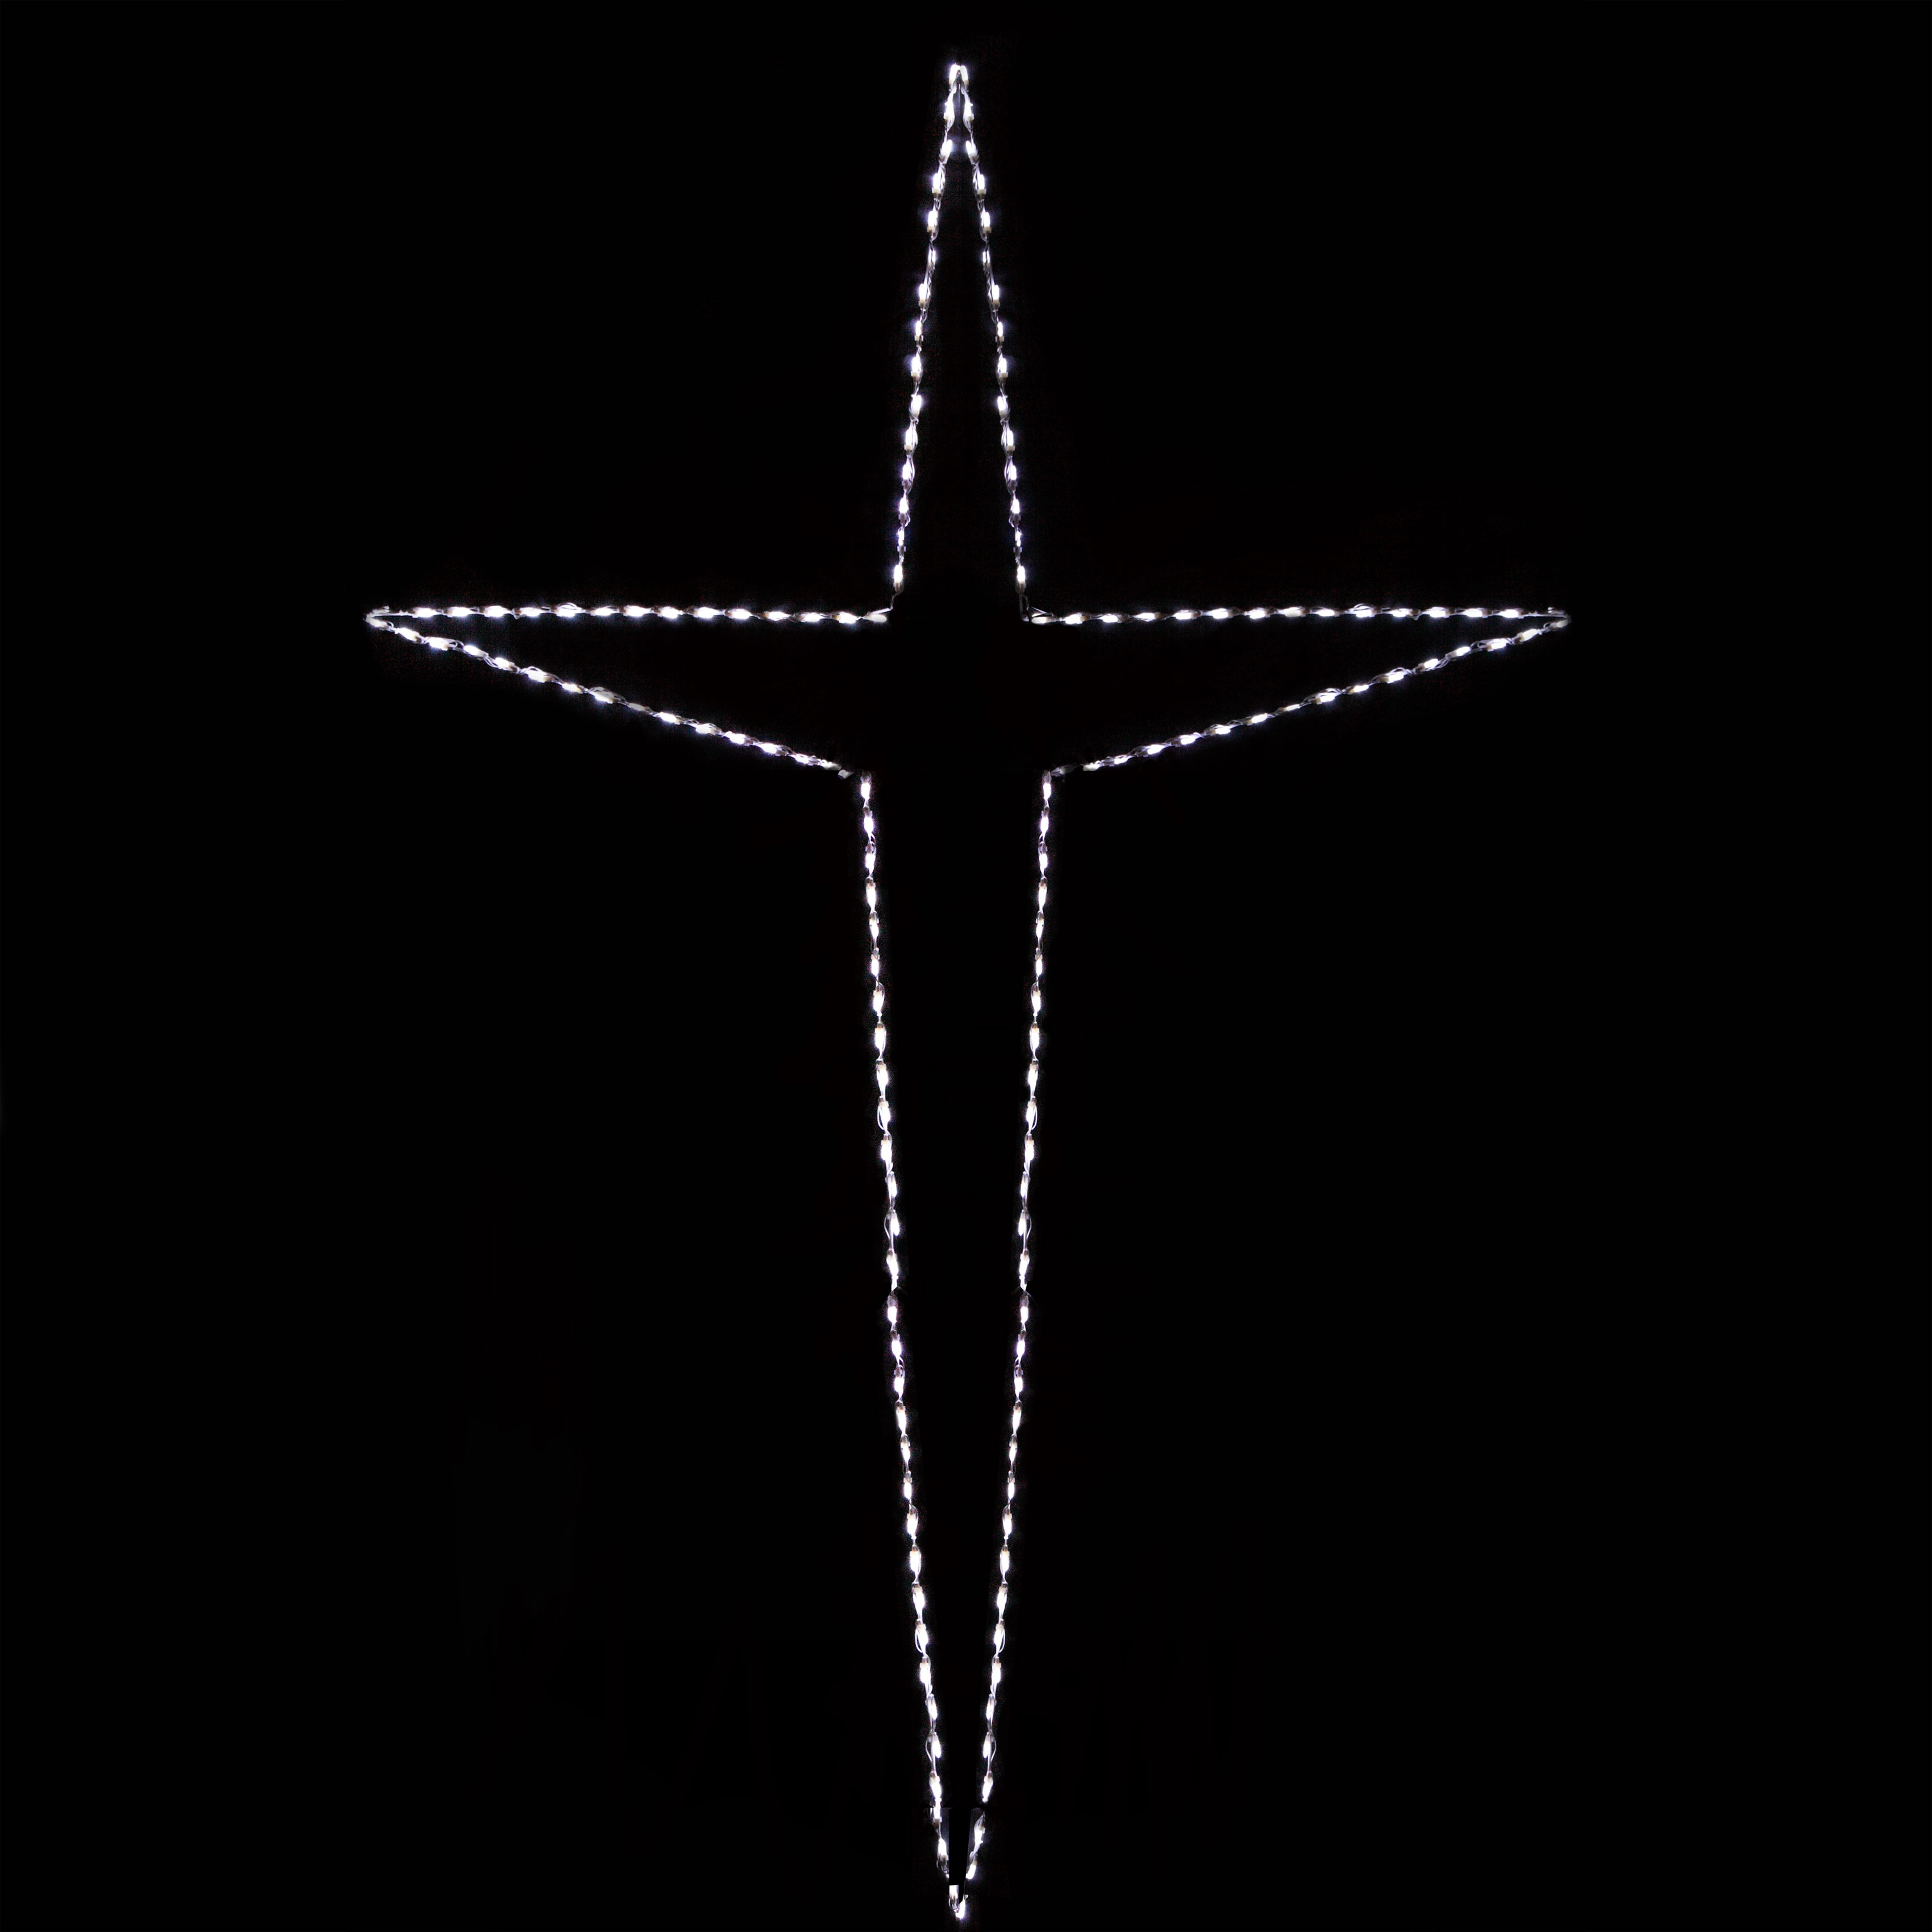 Outdoor String Lights For Trees Snowflakes & Stars - 10' Giant Led Folding Bethlehem Star